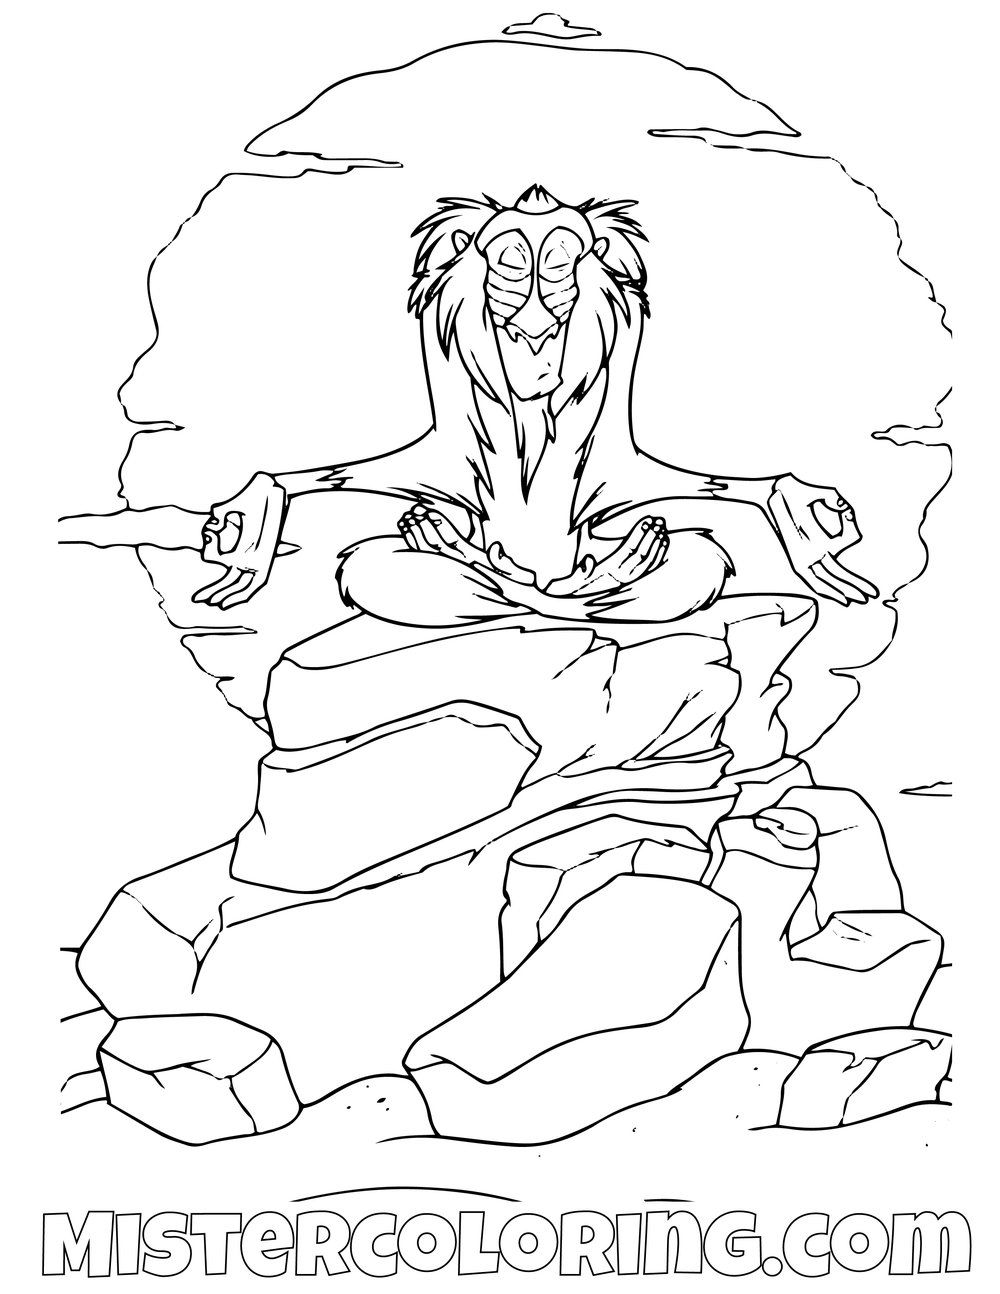 Rafiki Meditating The Lion King Coloring Pages Horse Coloring Pages Lion King Coloring Pages